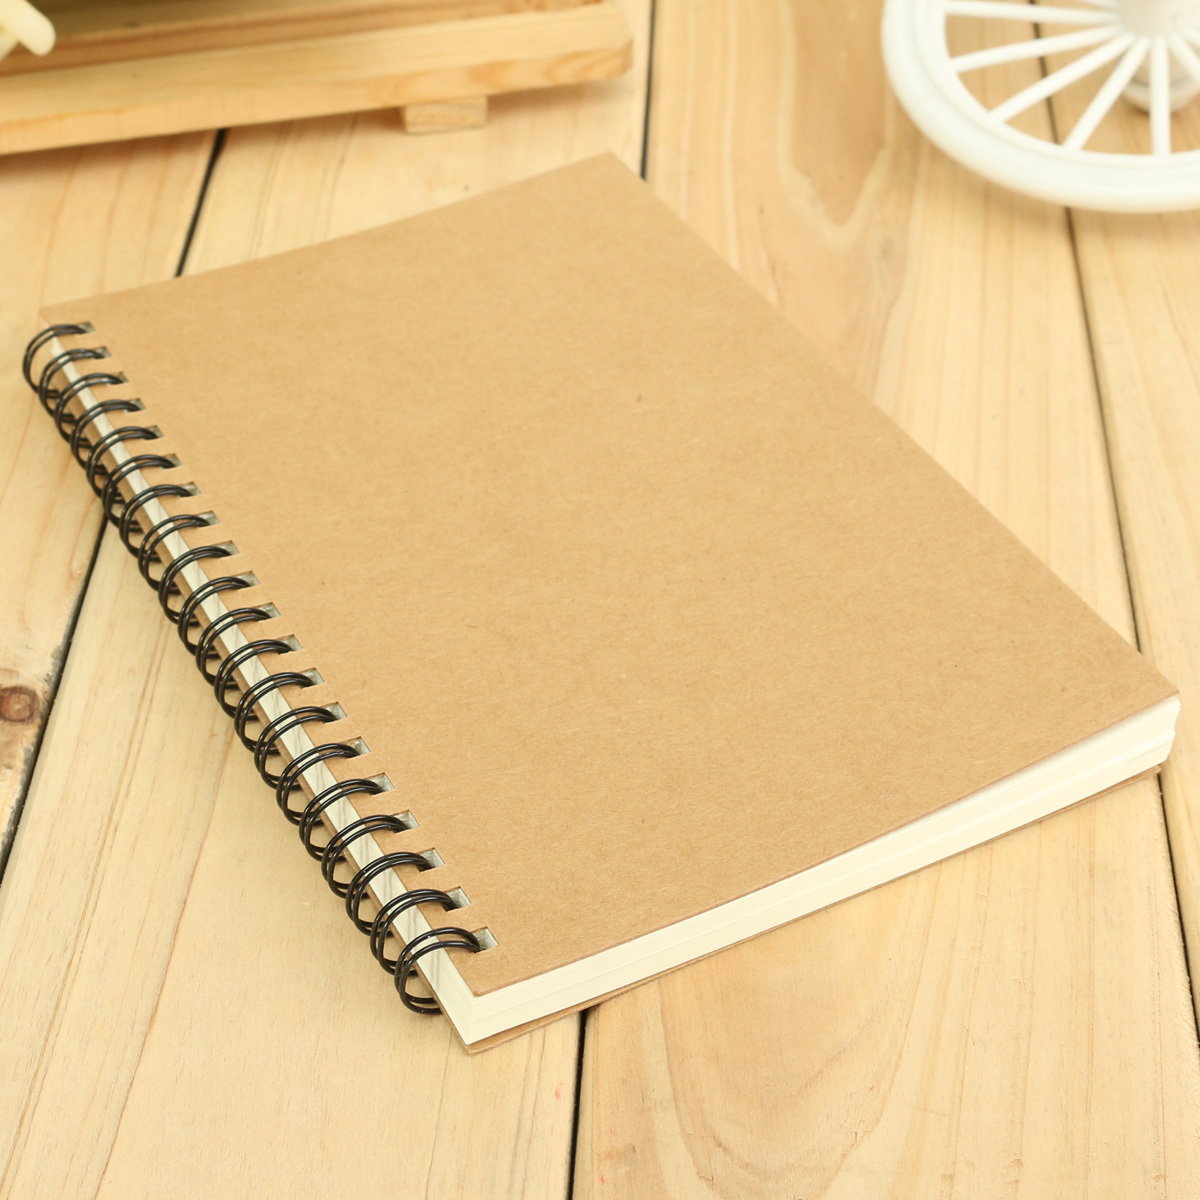 Inside Book Cover Paper : Philippines reeves retro spiral bound coil sketch book